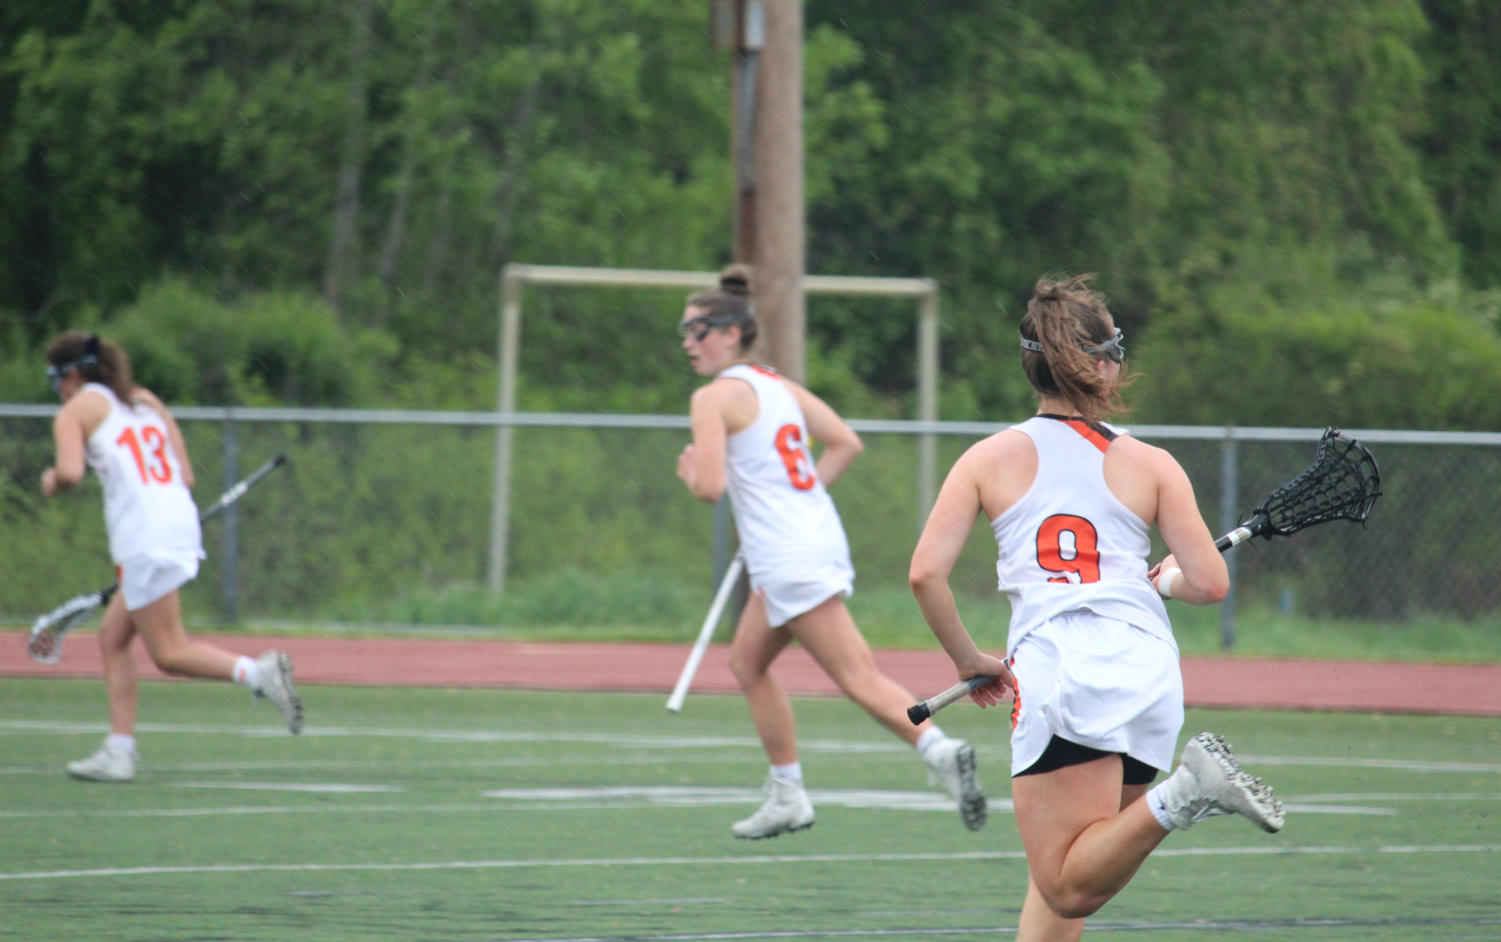 Balicki+rushes+down+the+field+to+help+their+team+mates+on+offense.